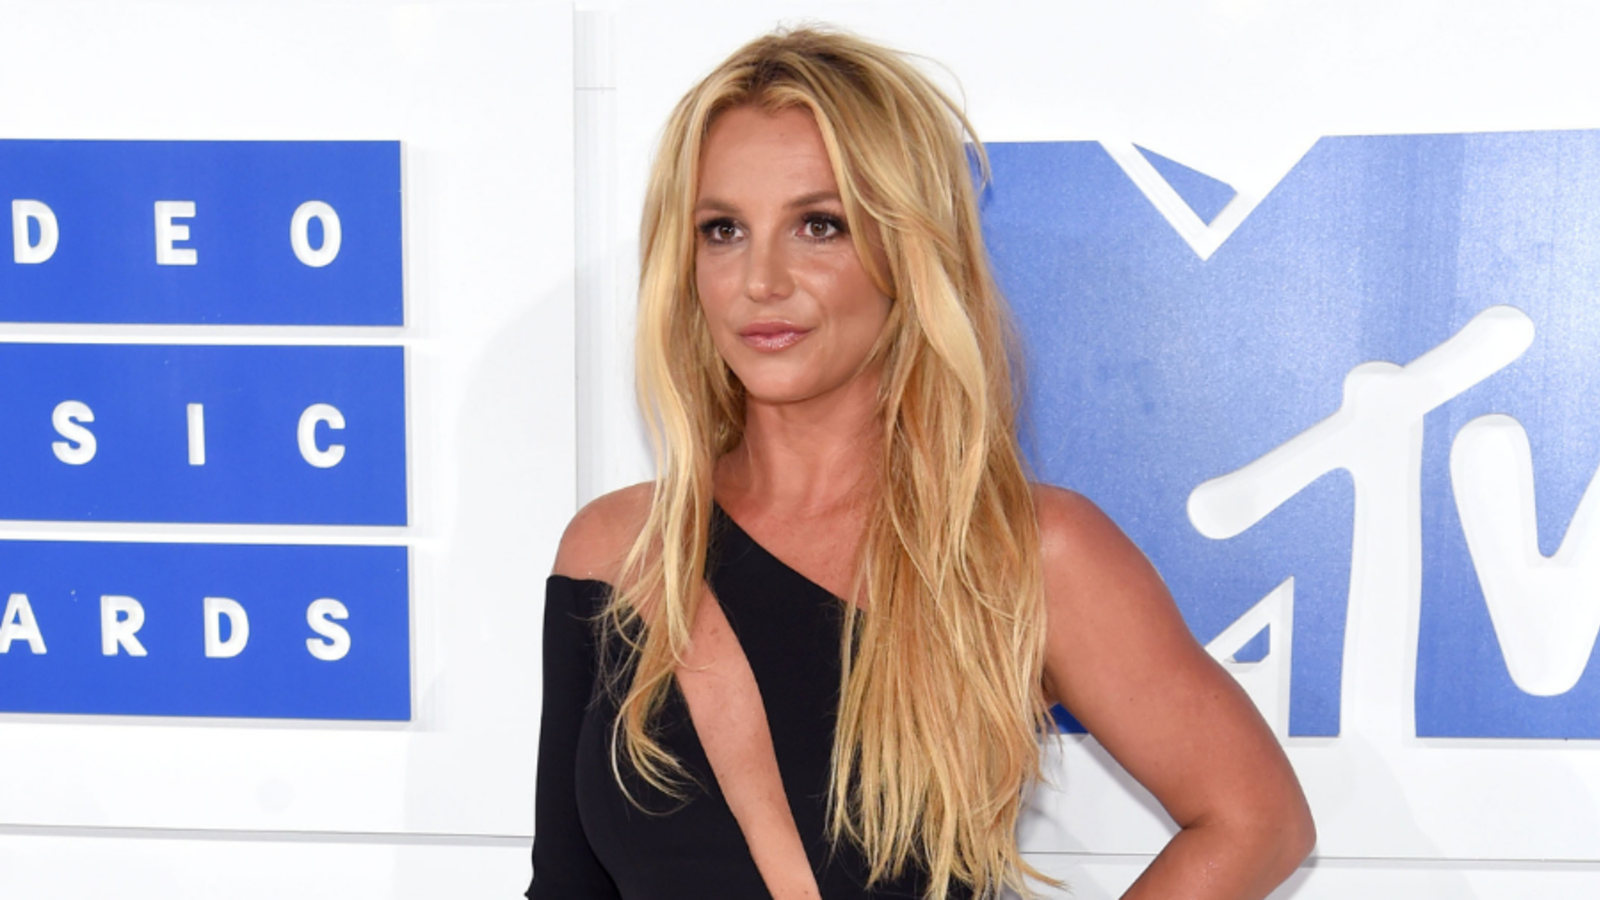 'Lord Have Mercy' On Britney Spears' Family If She Ever Does An Interview